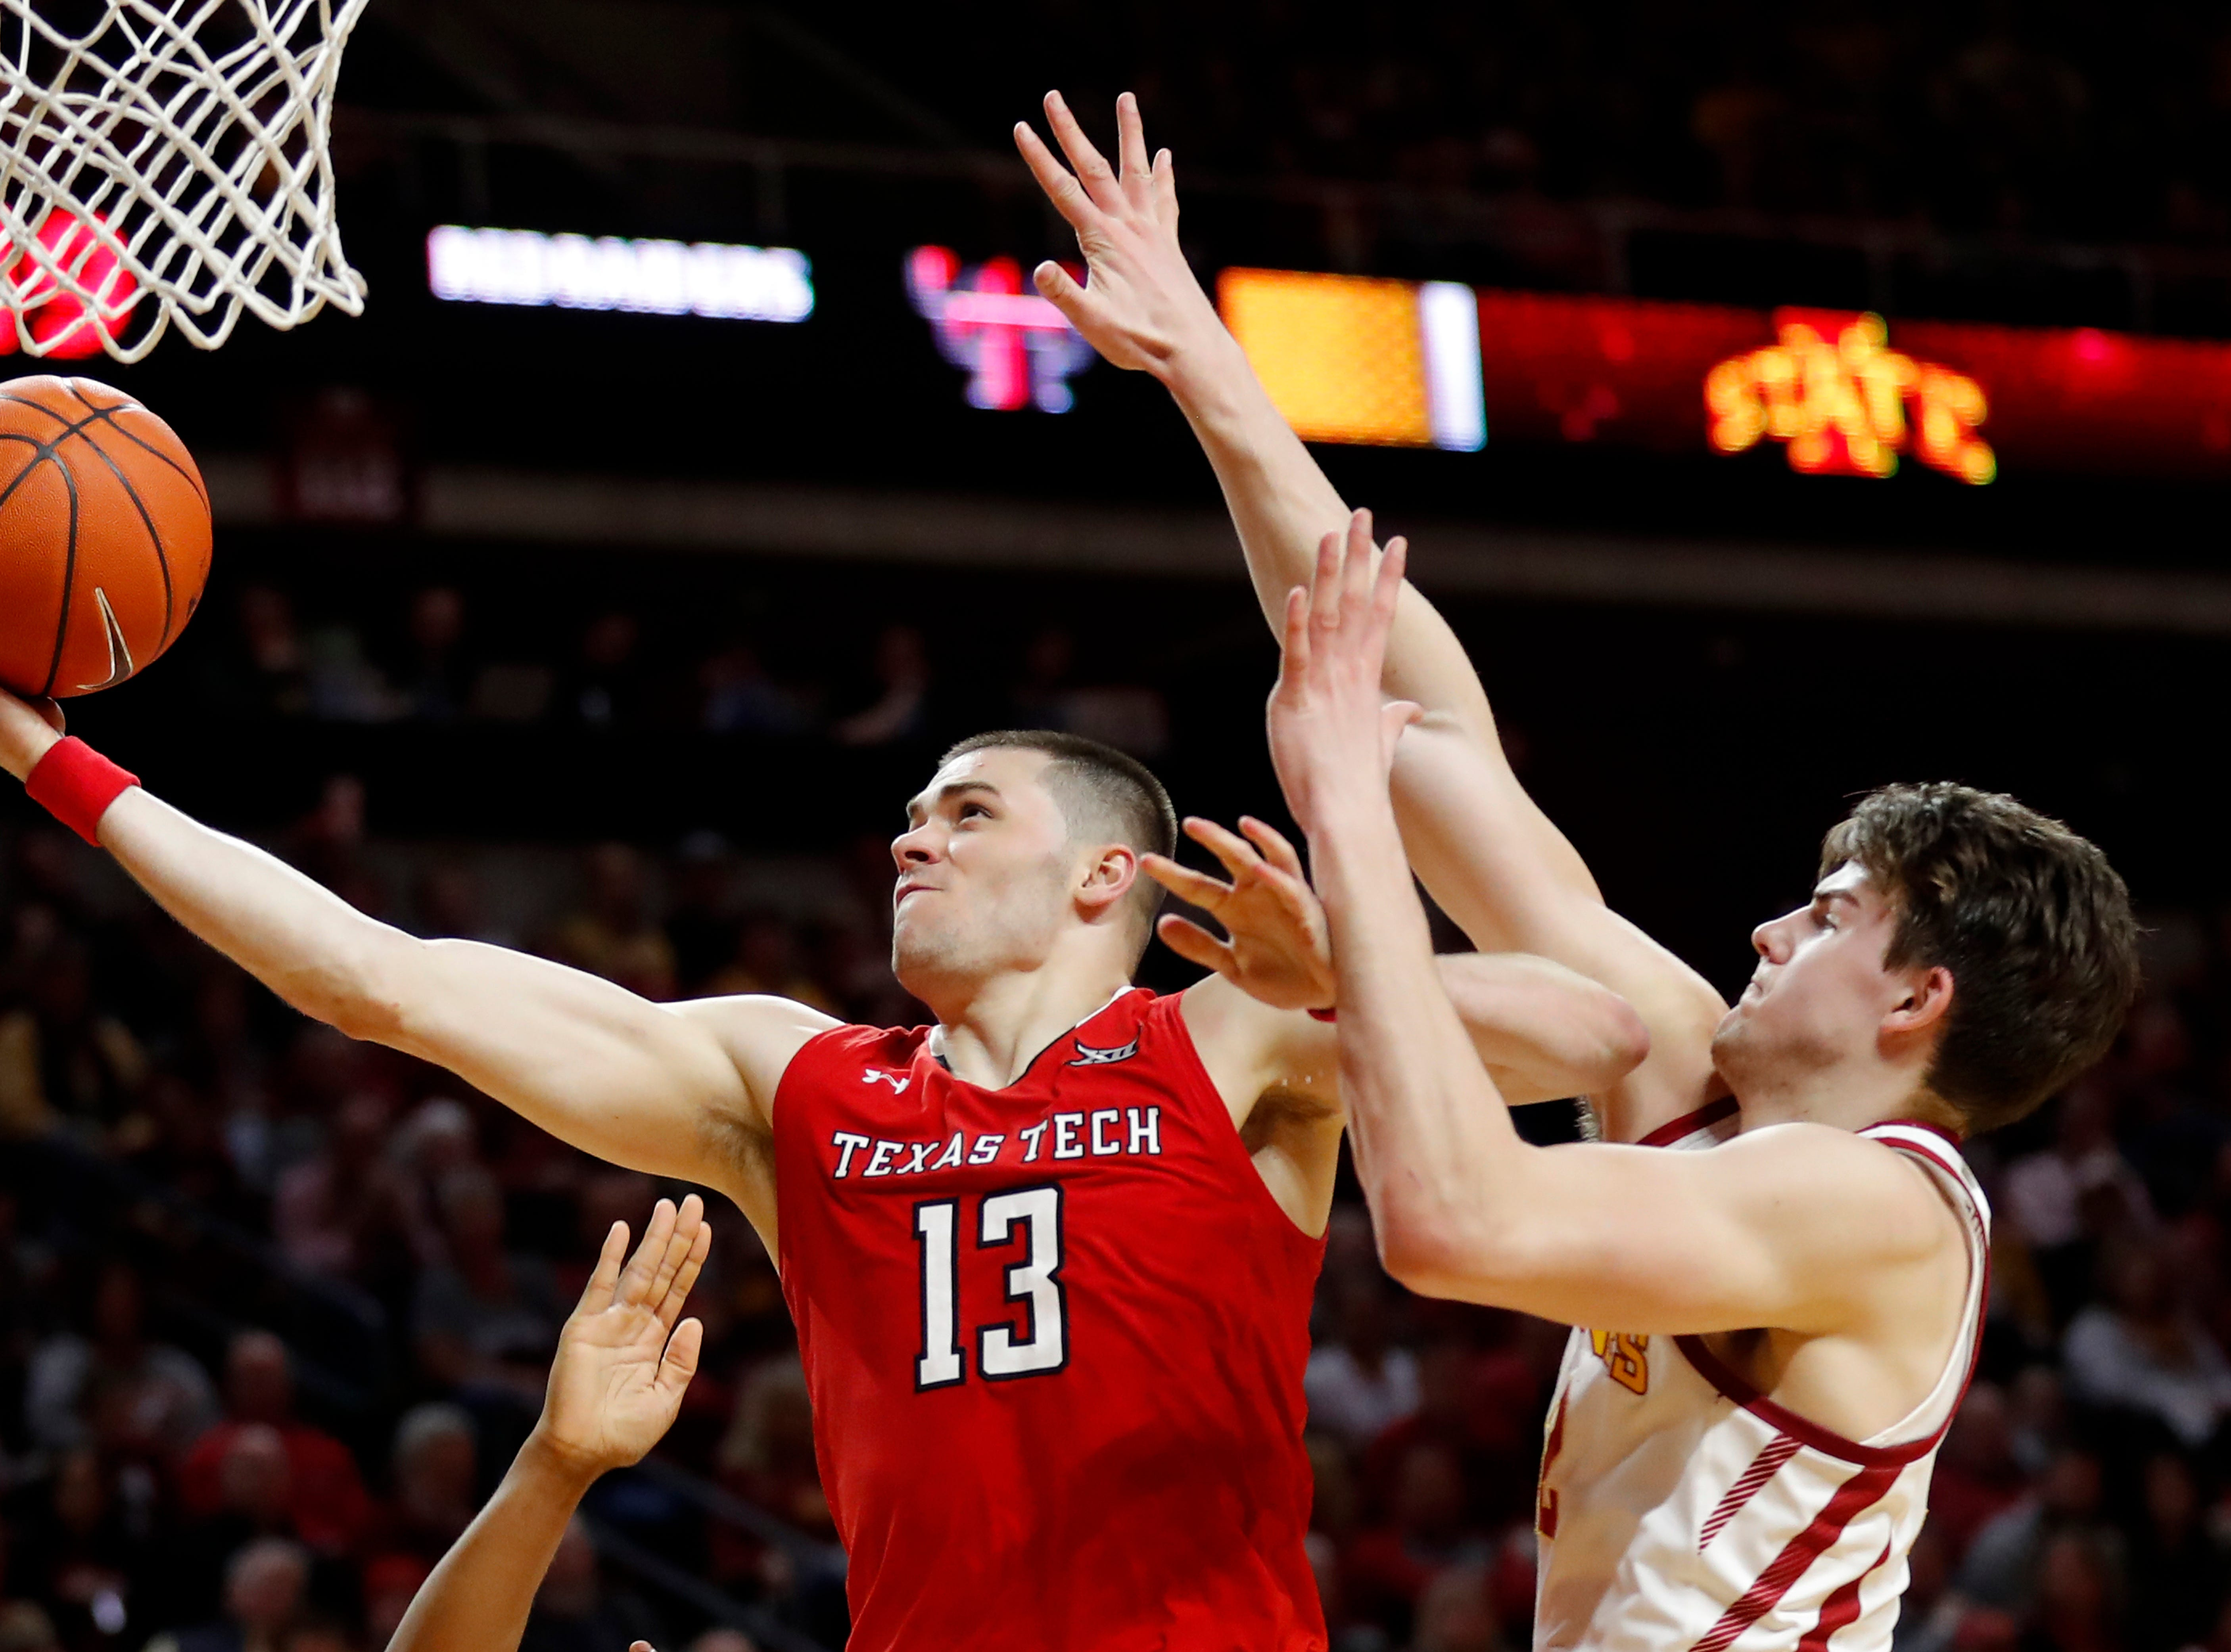 Texas Tech guard Matt Mooney (13) drives to the basket ahead of Iowa State forward Michael Jacobson during the second half of an NCAA college basketball game, Saturday, March 9, 2019, in Ames, Iowa. Texas Tech won 80-73. (AP Photo/Charlie Neibergall)